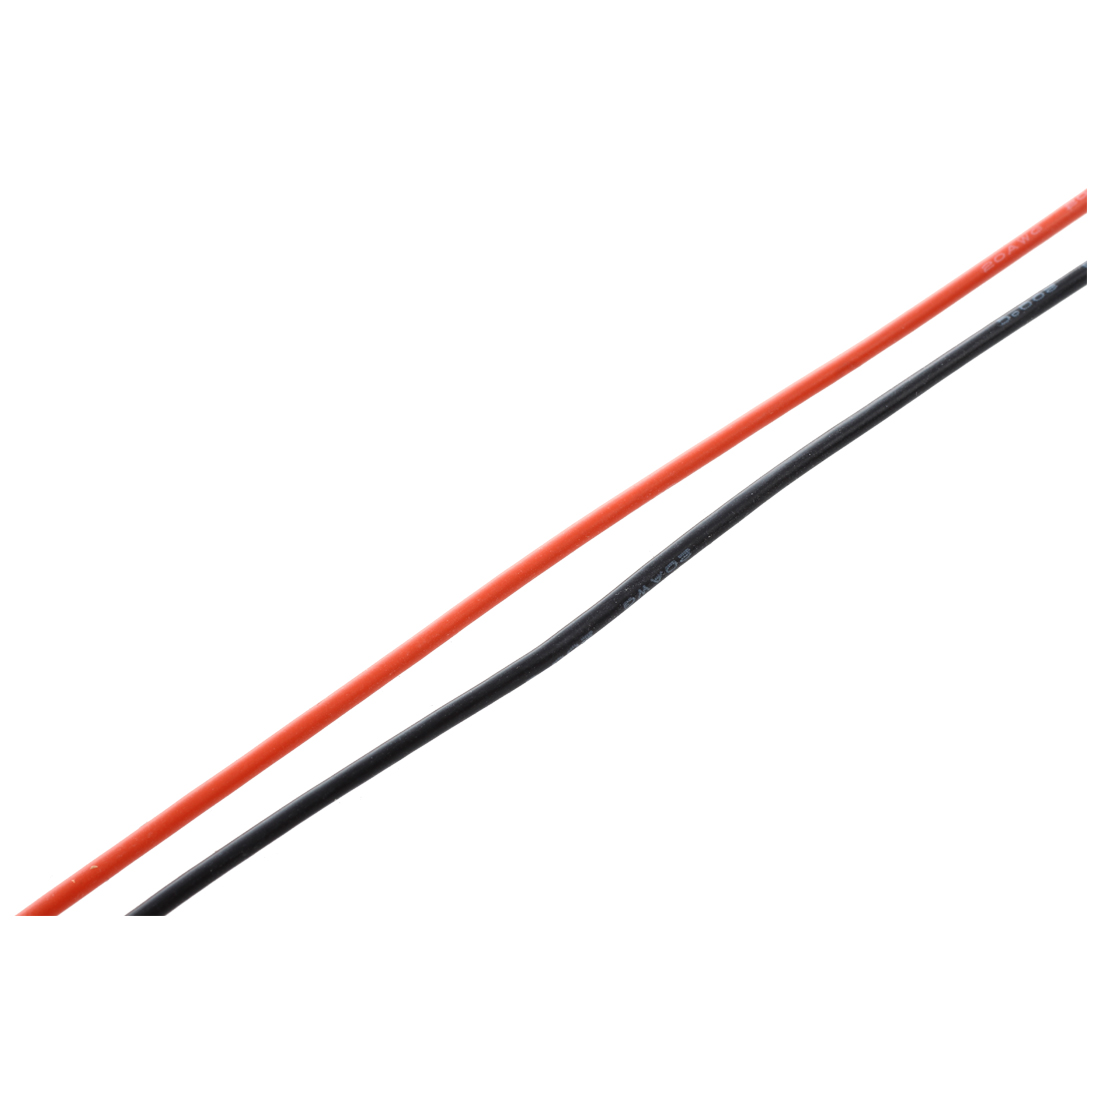 2x 3m 20 Gauge Awg Silicone Rubber Wire Cable Red Black